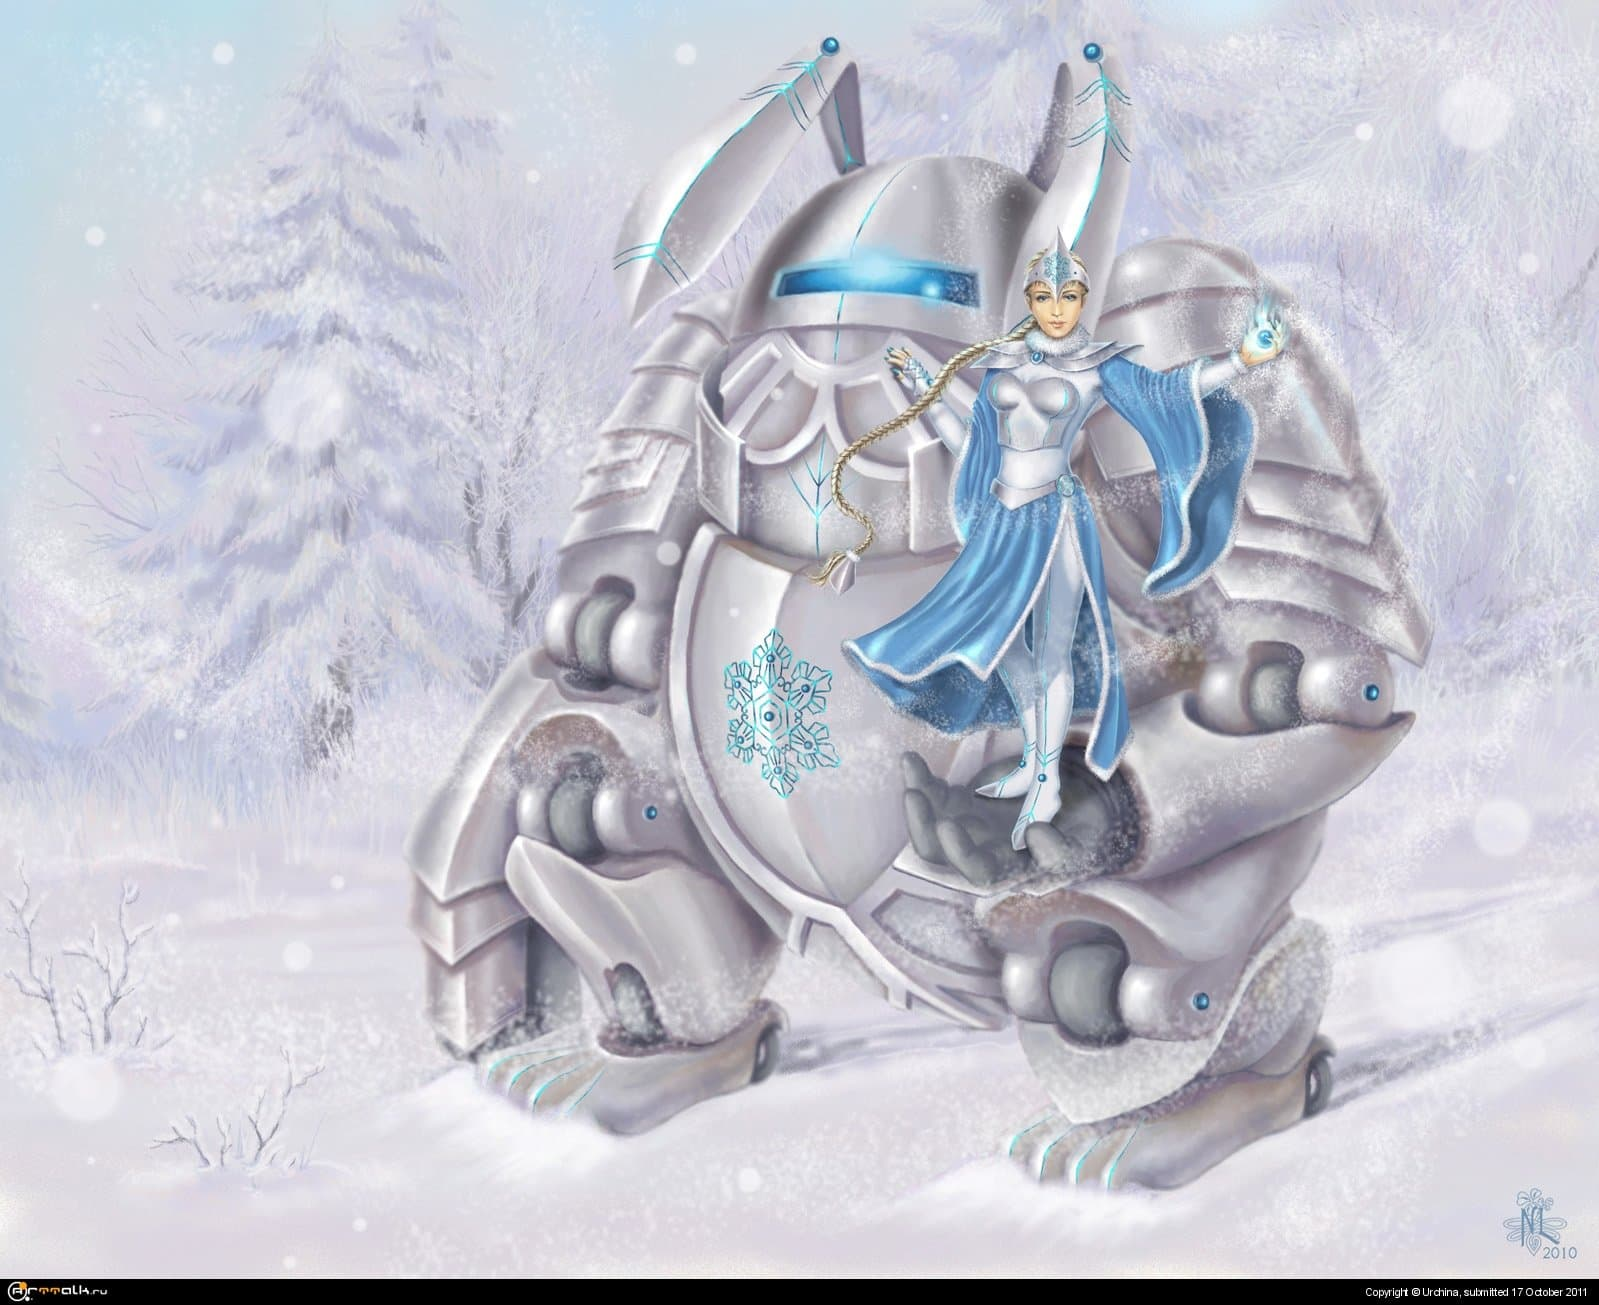 Cyber-snow Maiden And A Mobile Rabbit Armor